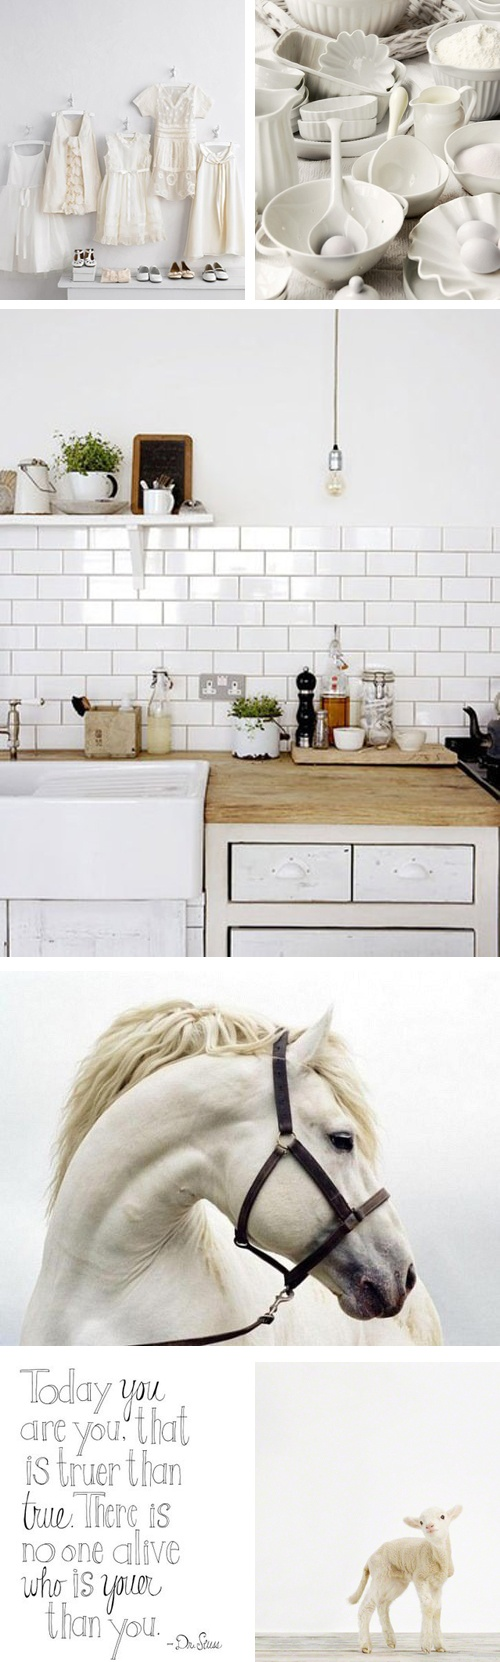 44 best Kitchen images on Pinterest | Beaumont tiles, Kitchens and ...